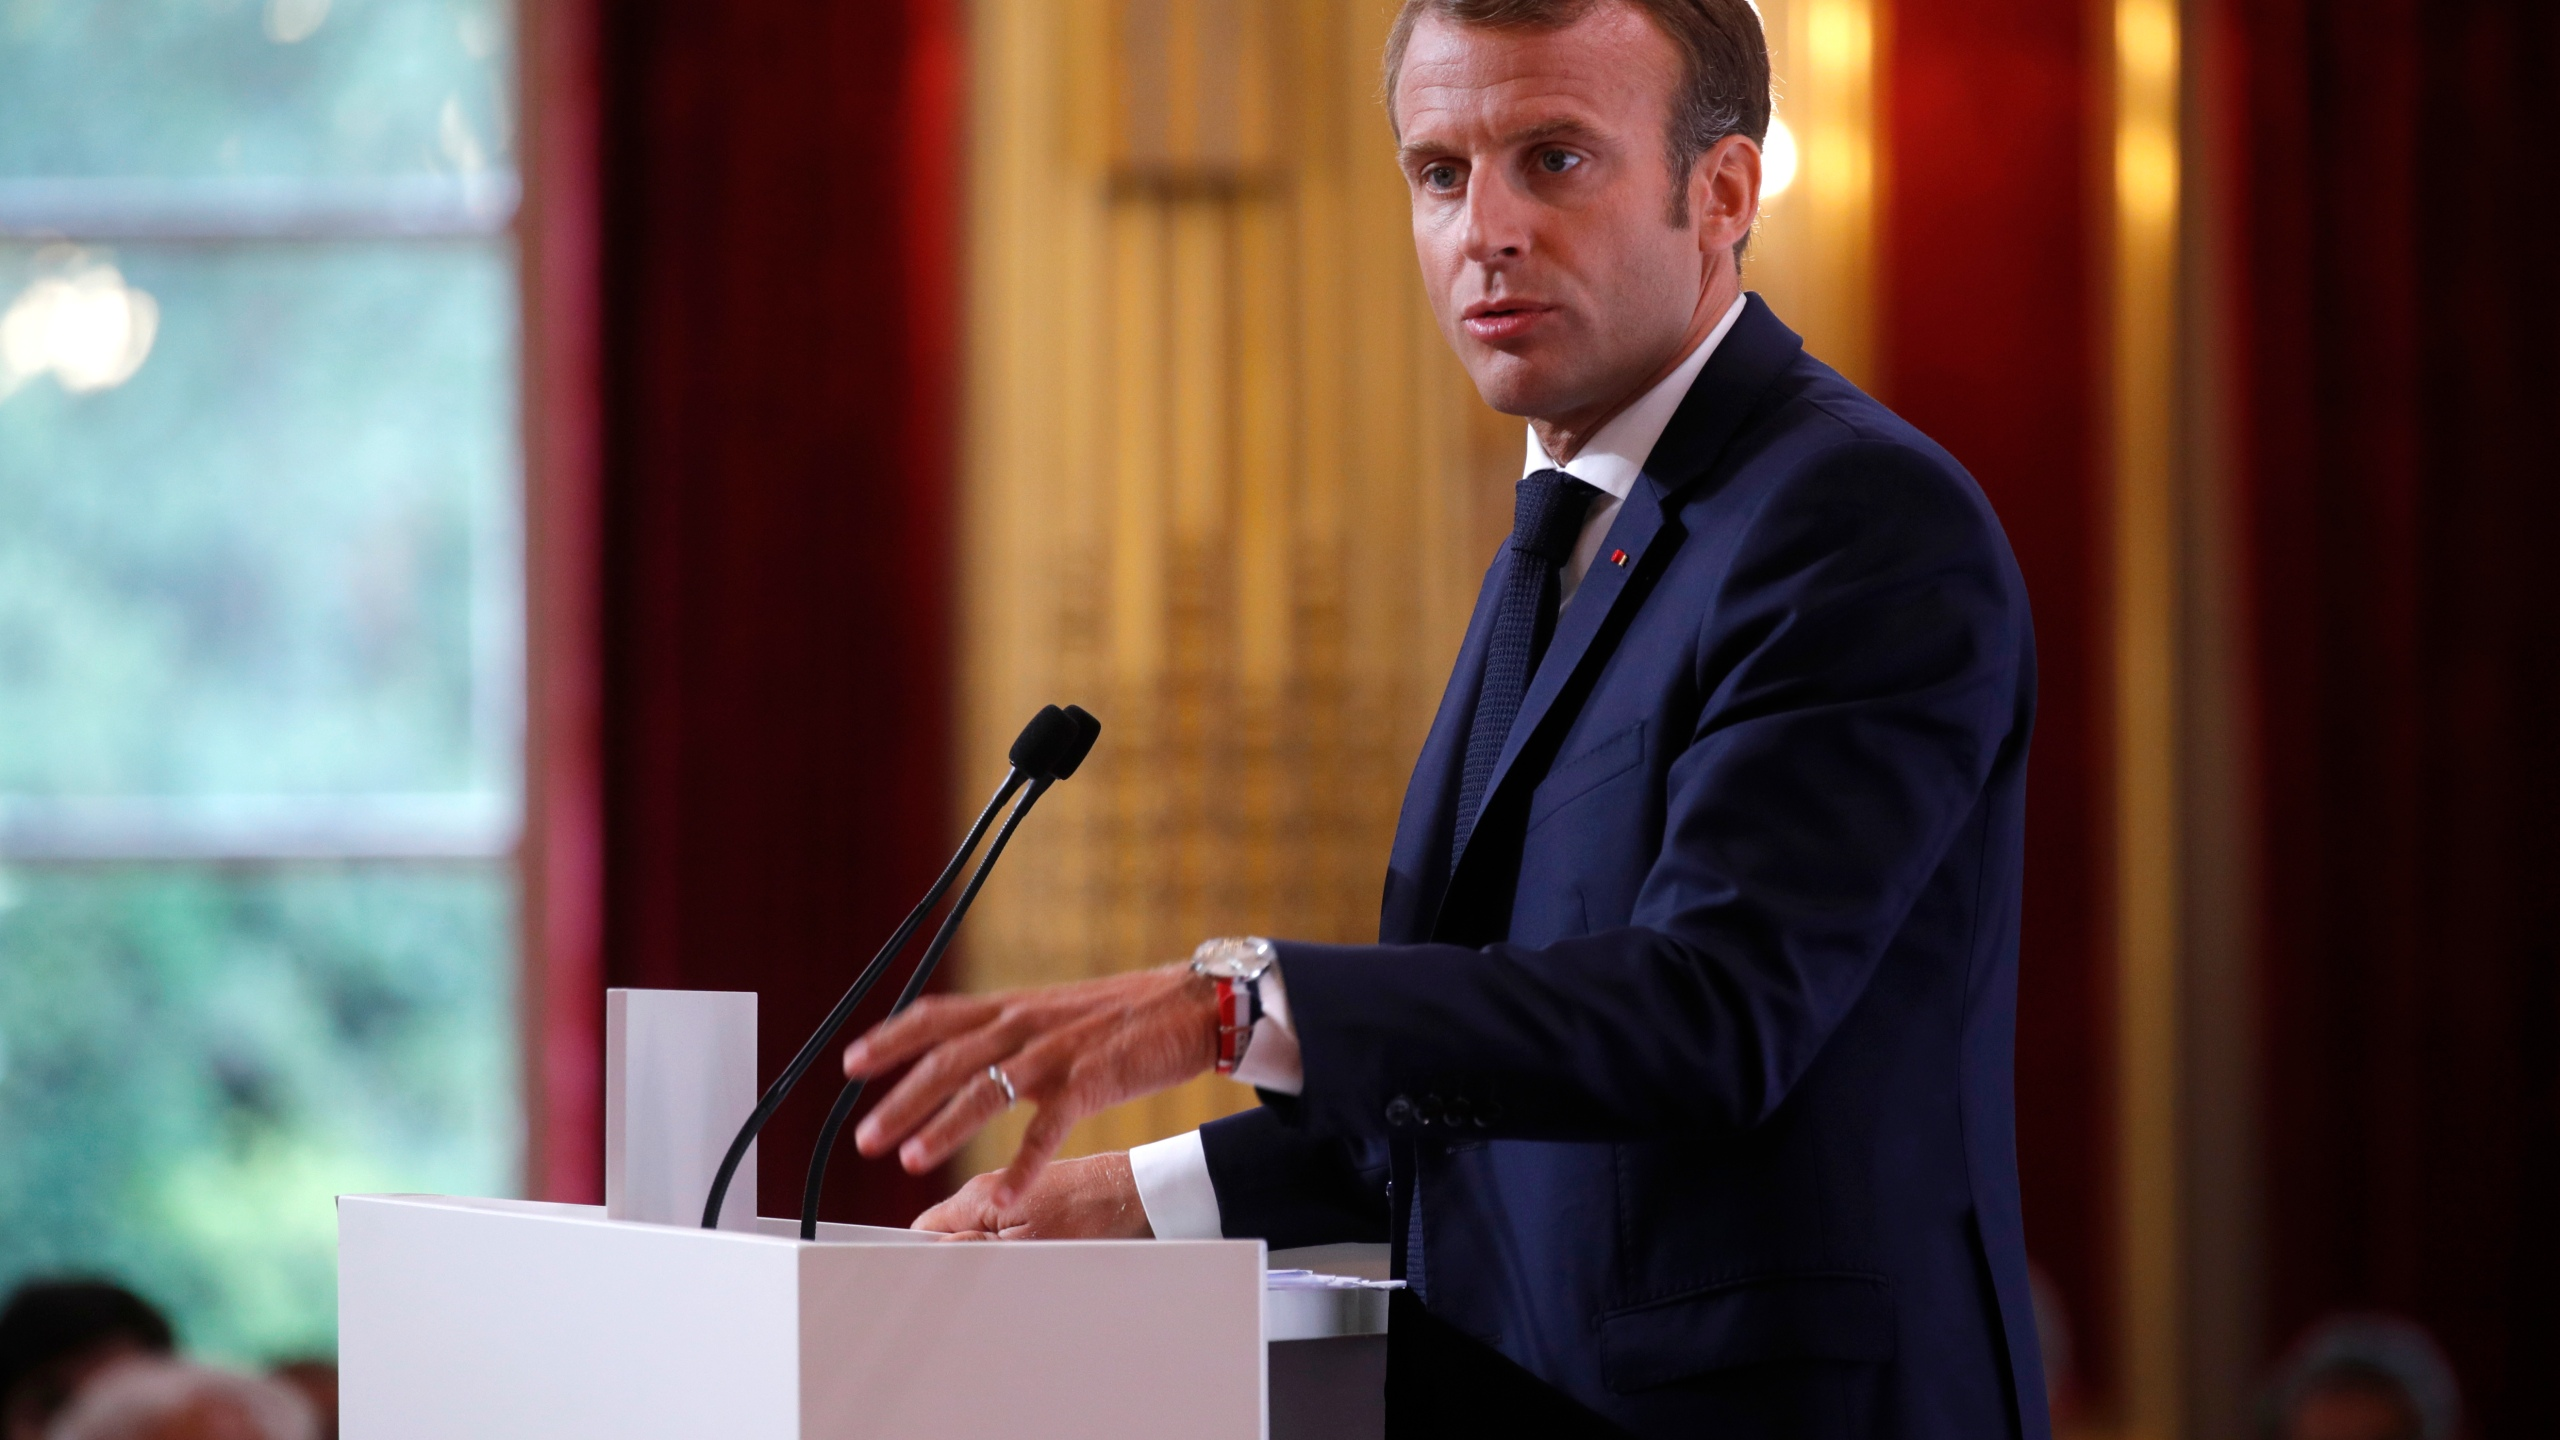 France_Macron_Foreign_Policy_80576-159532.jpg58999091